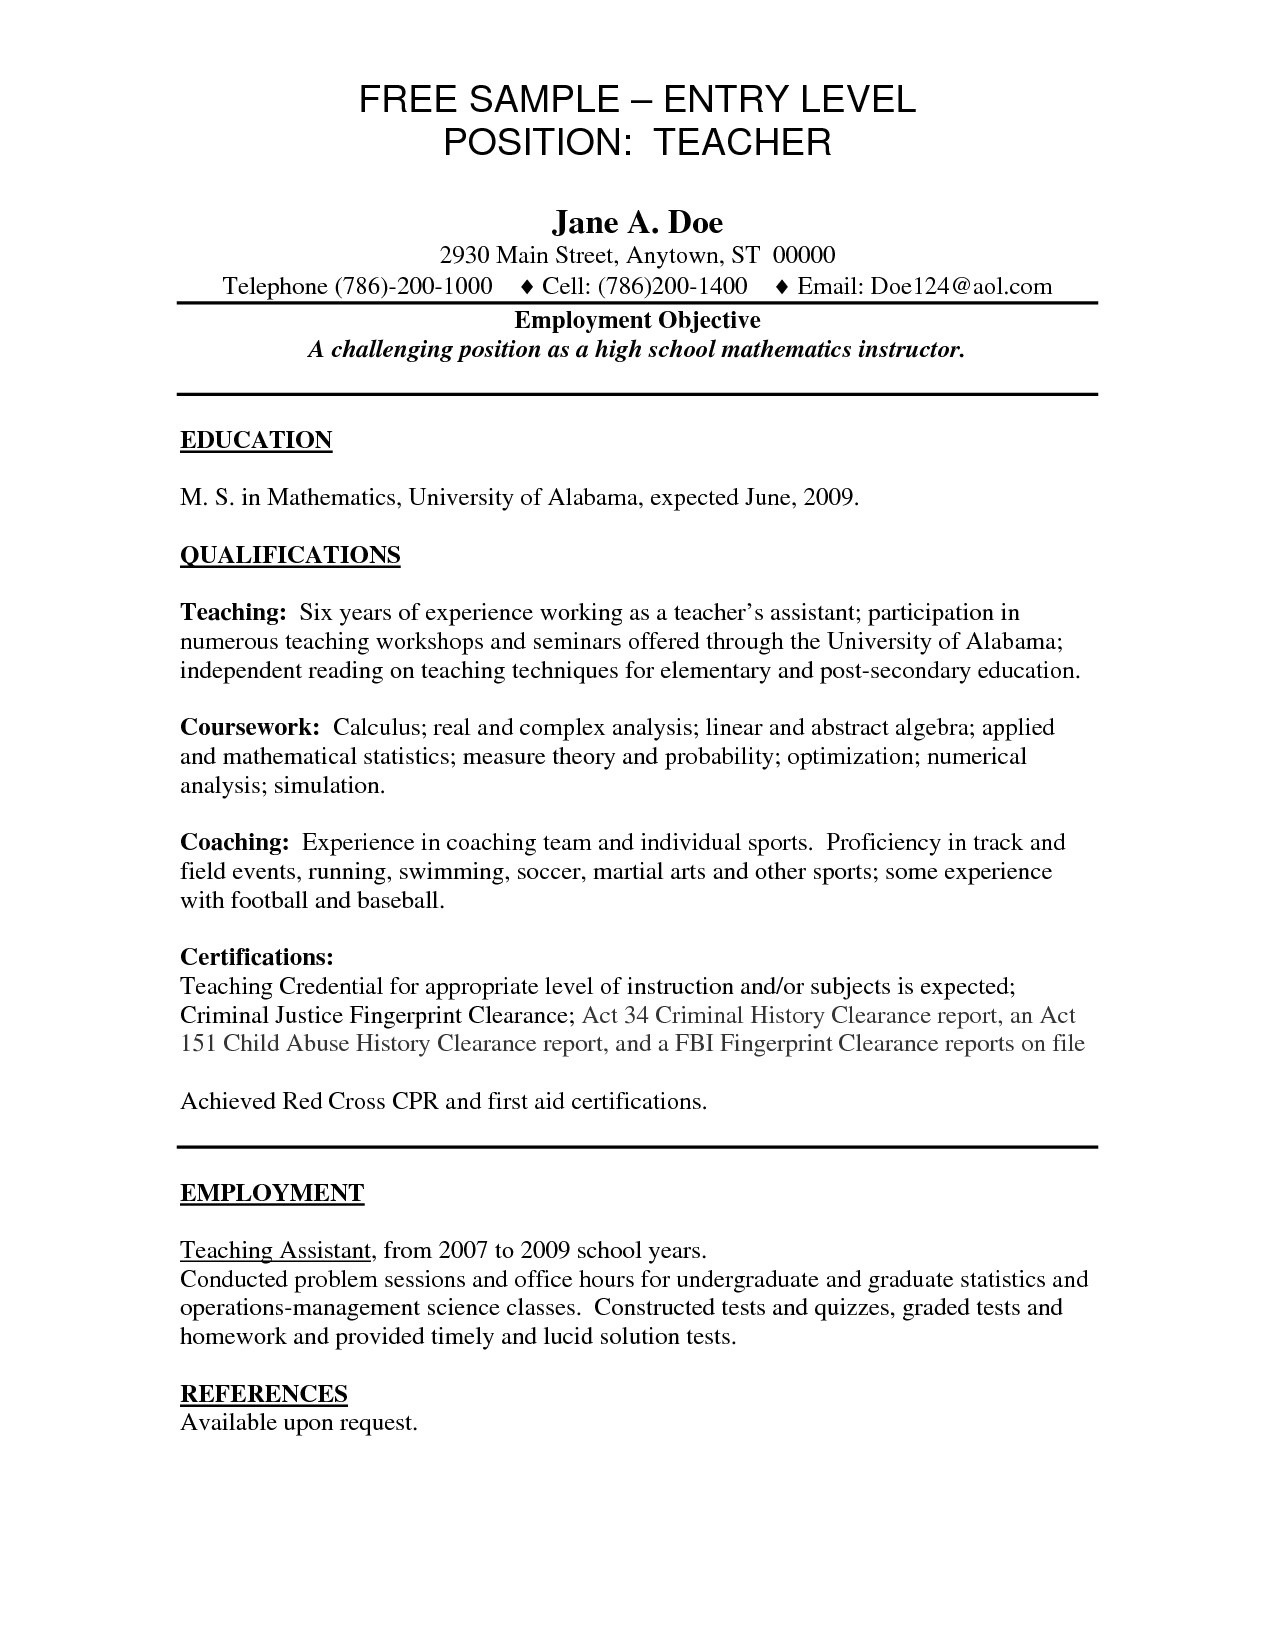 Sample Resumes for Entry Level Positions Entry Level It Job Resume Resume Ideas